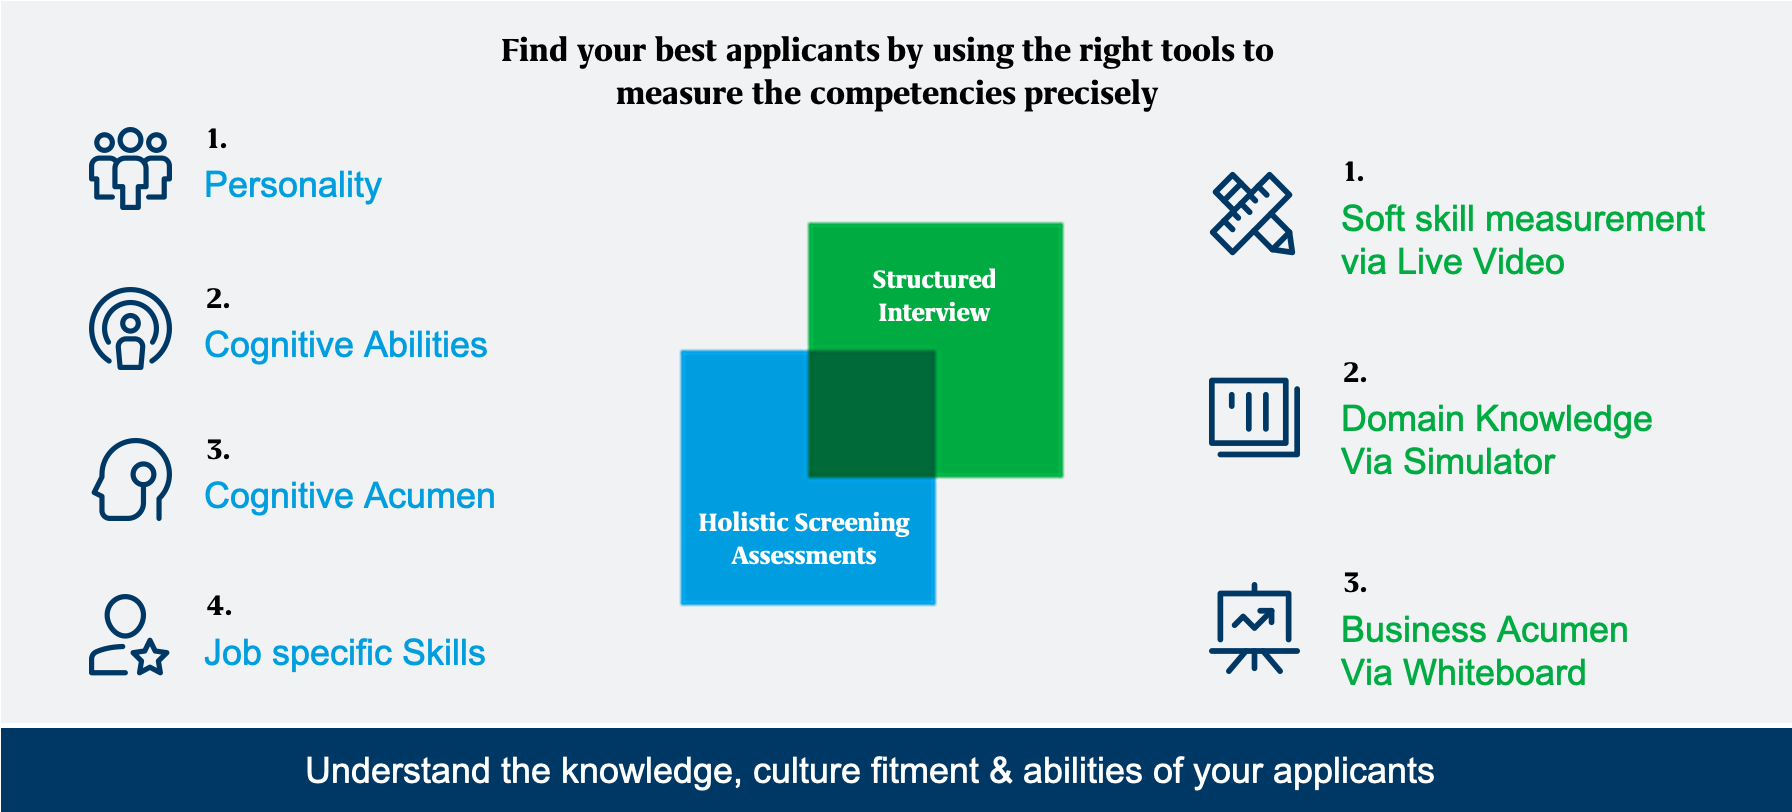 find_your_best_applicants_by_using_the_right_tools_to_measure_the_competencies_precisely